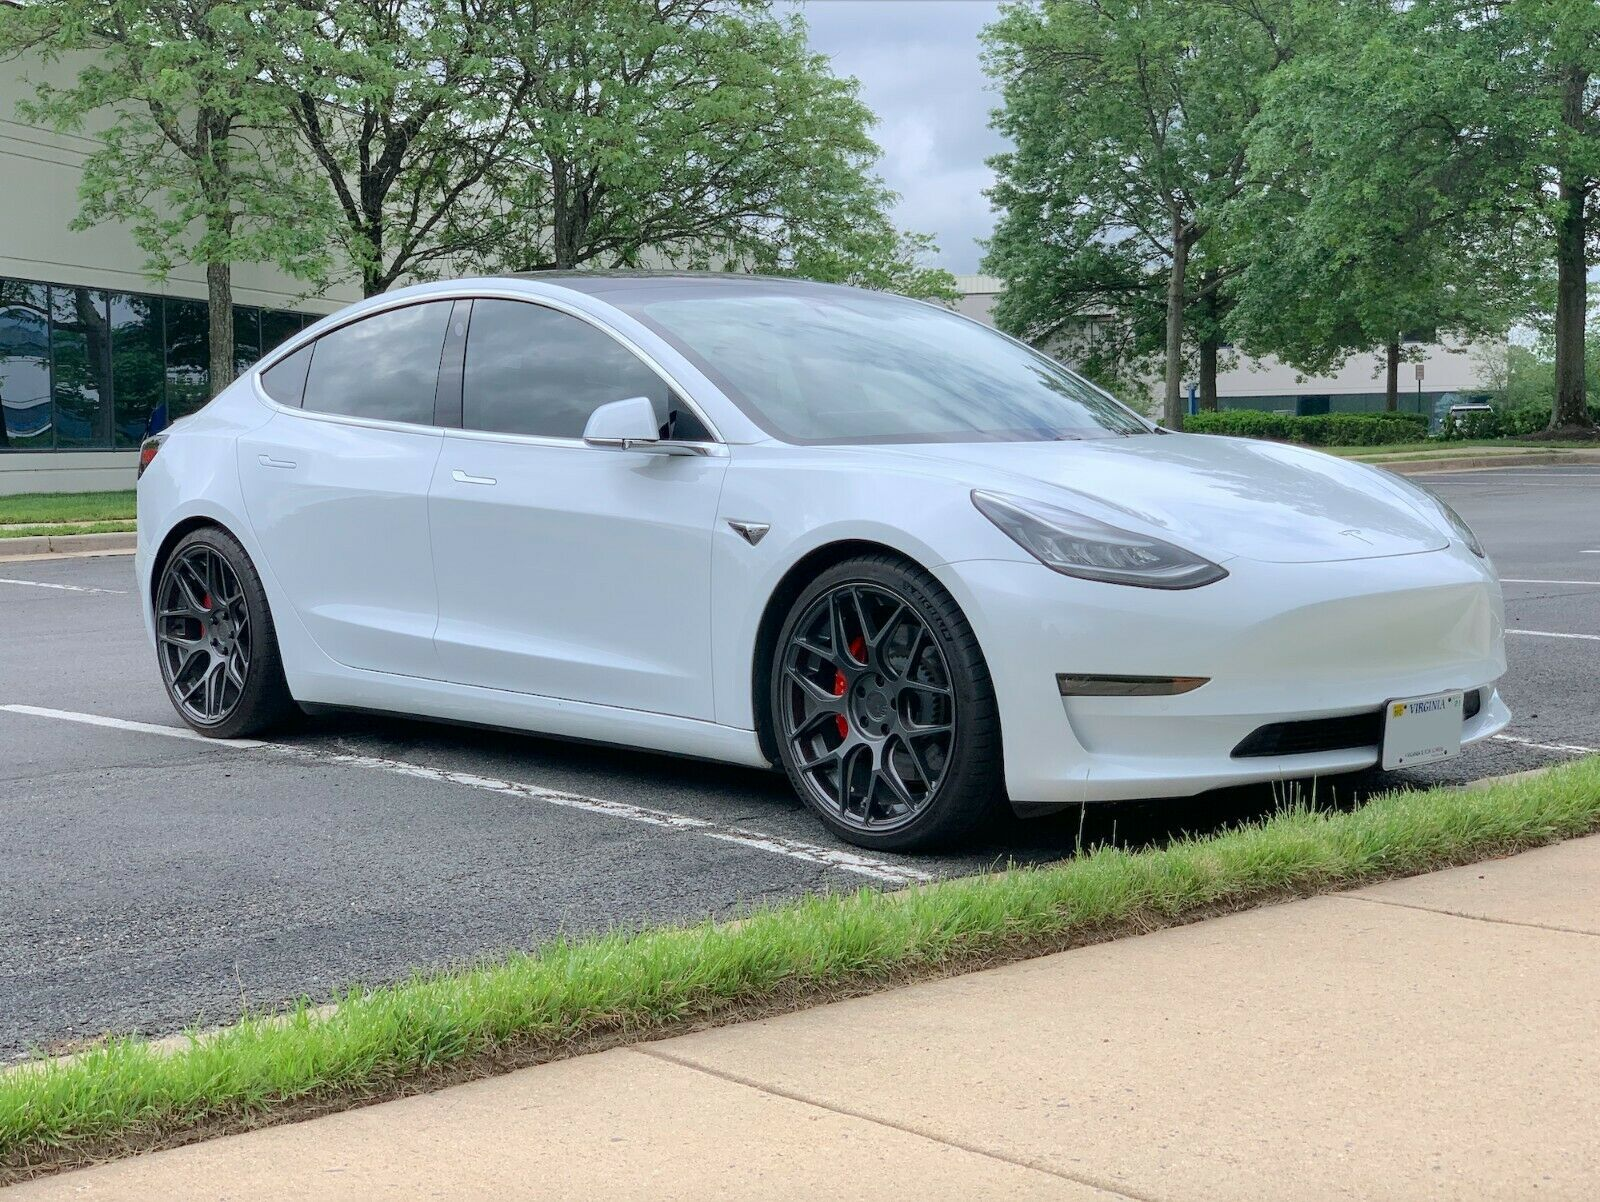 2018 Tesla Model 3 White Performance Plus - Enhanced Auto Pilot